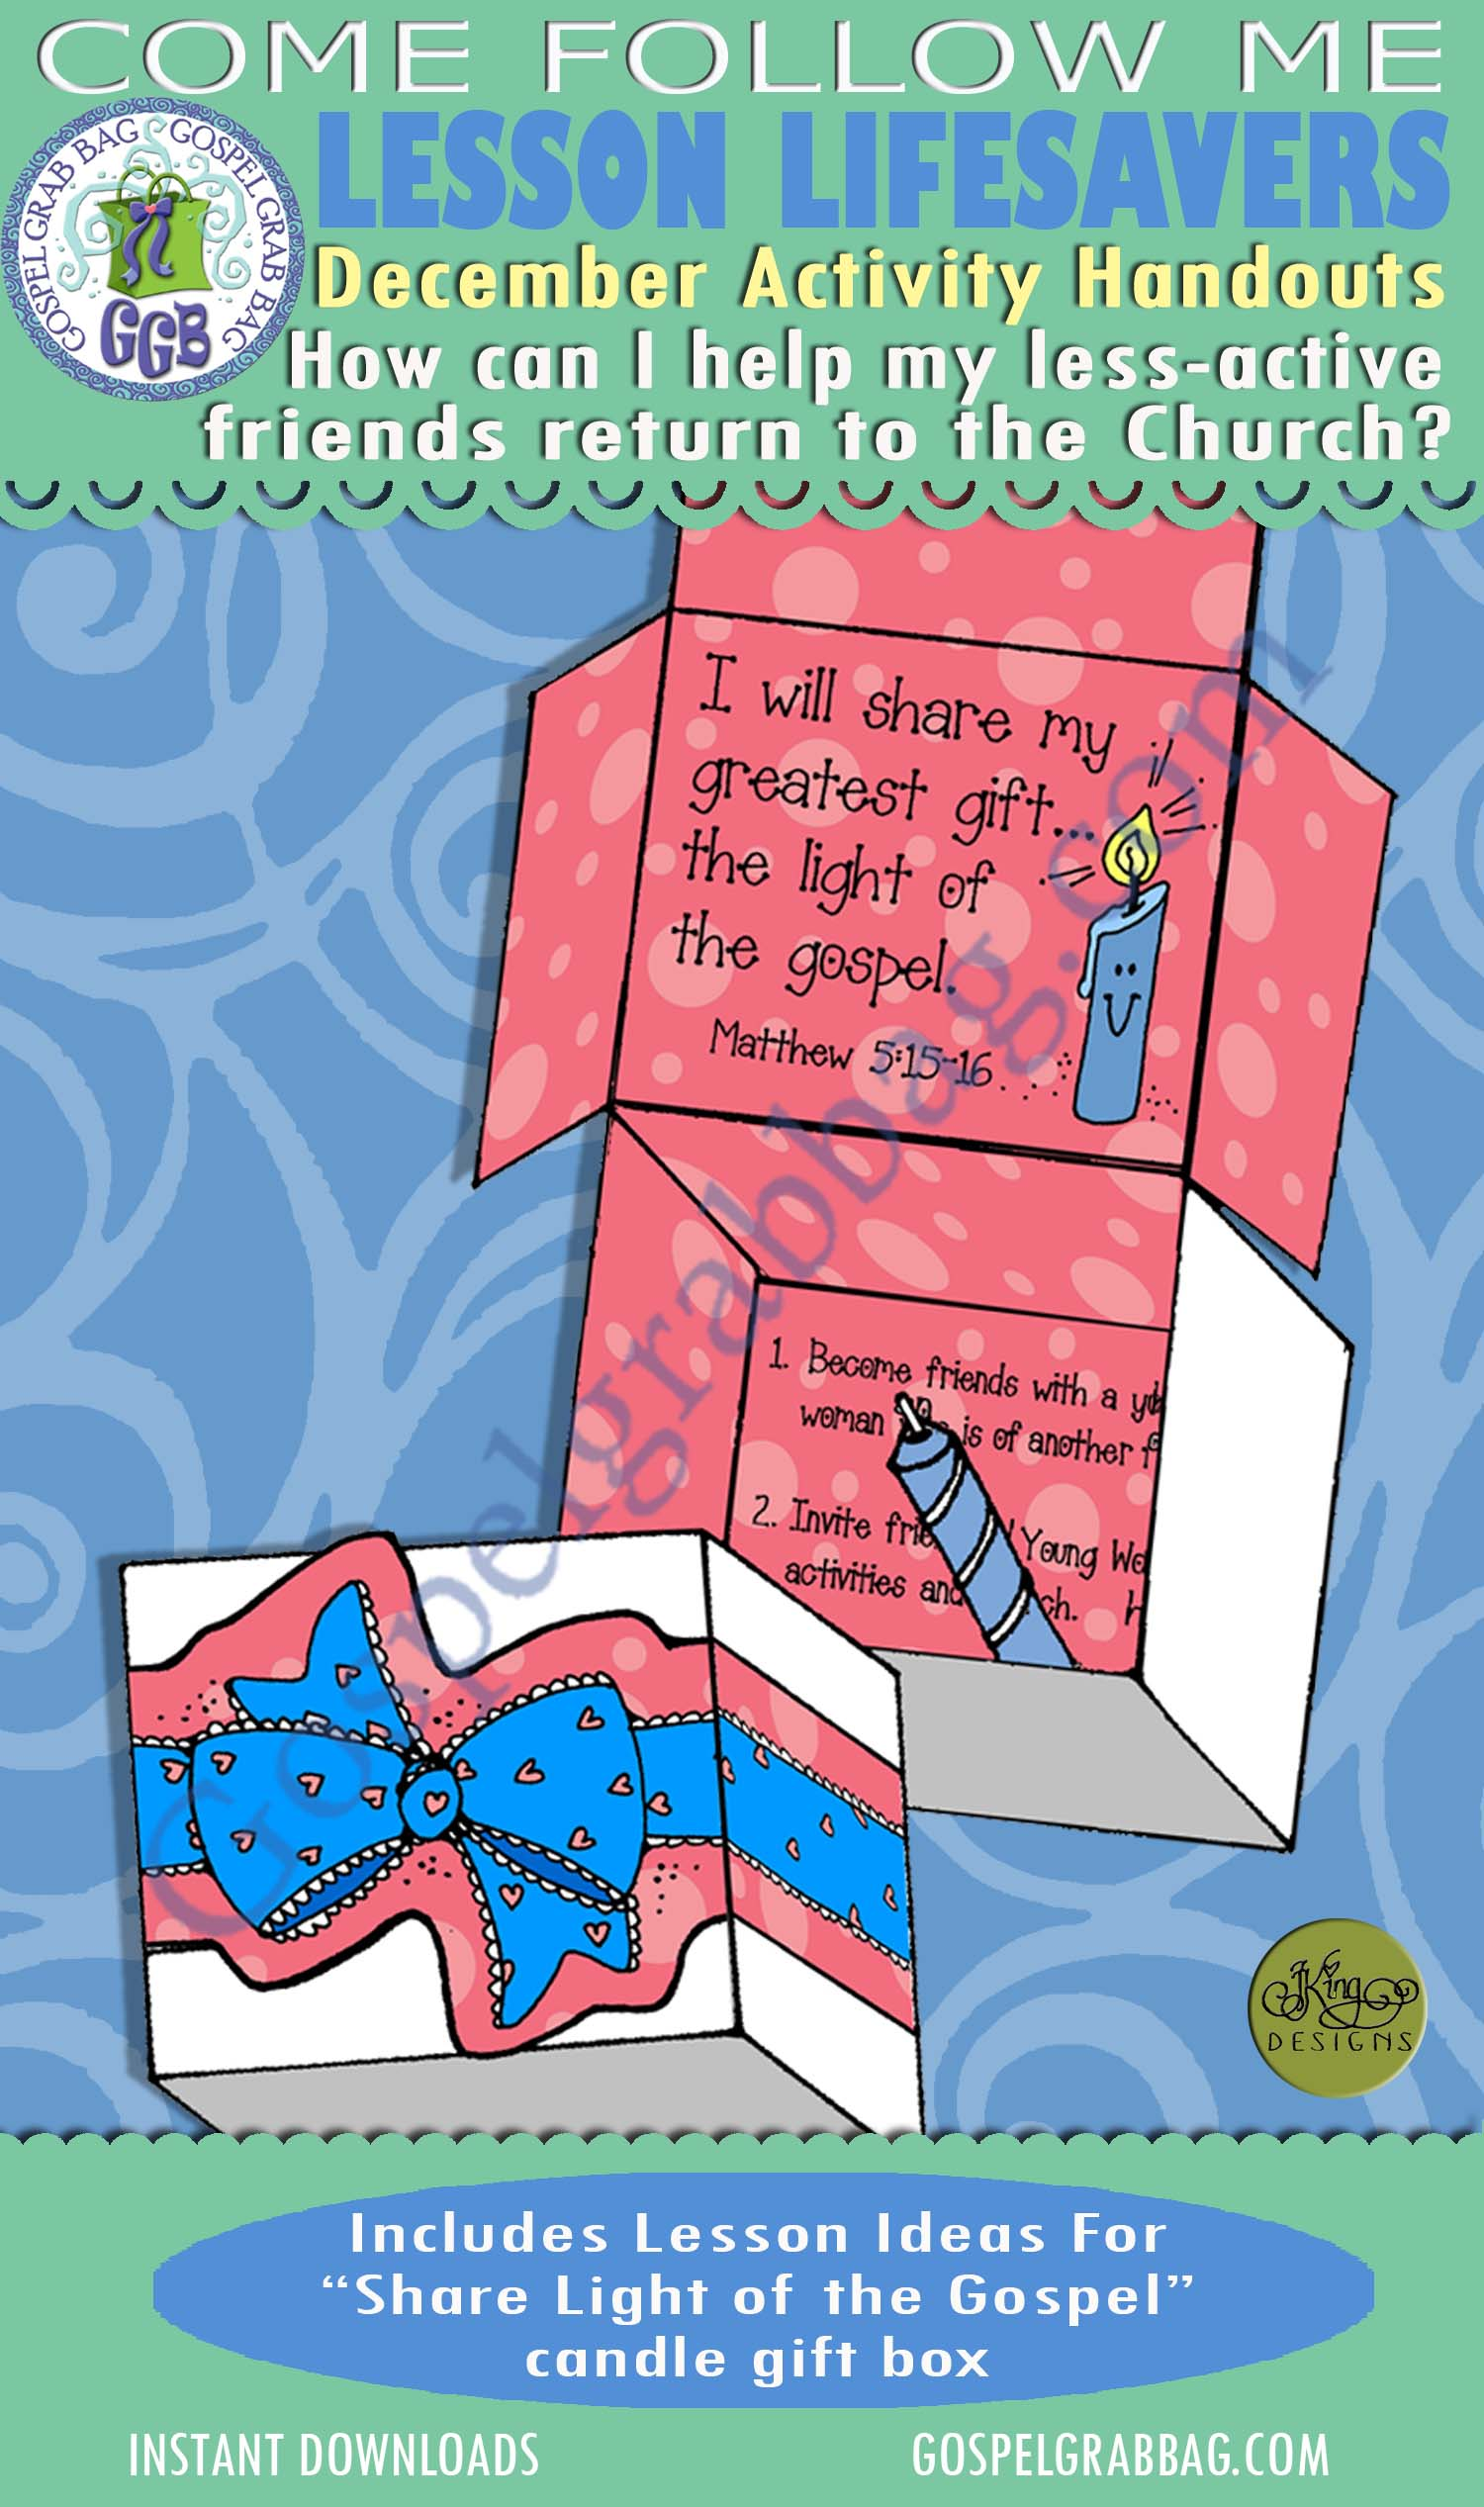 "$1.75 December Lesson 5 - Come Follow Me ""How can I help my less-active friends retkurn to the Church?"" ACTIVITY: Light of the Gospel candle gift box"